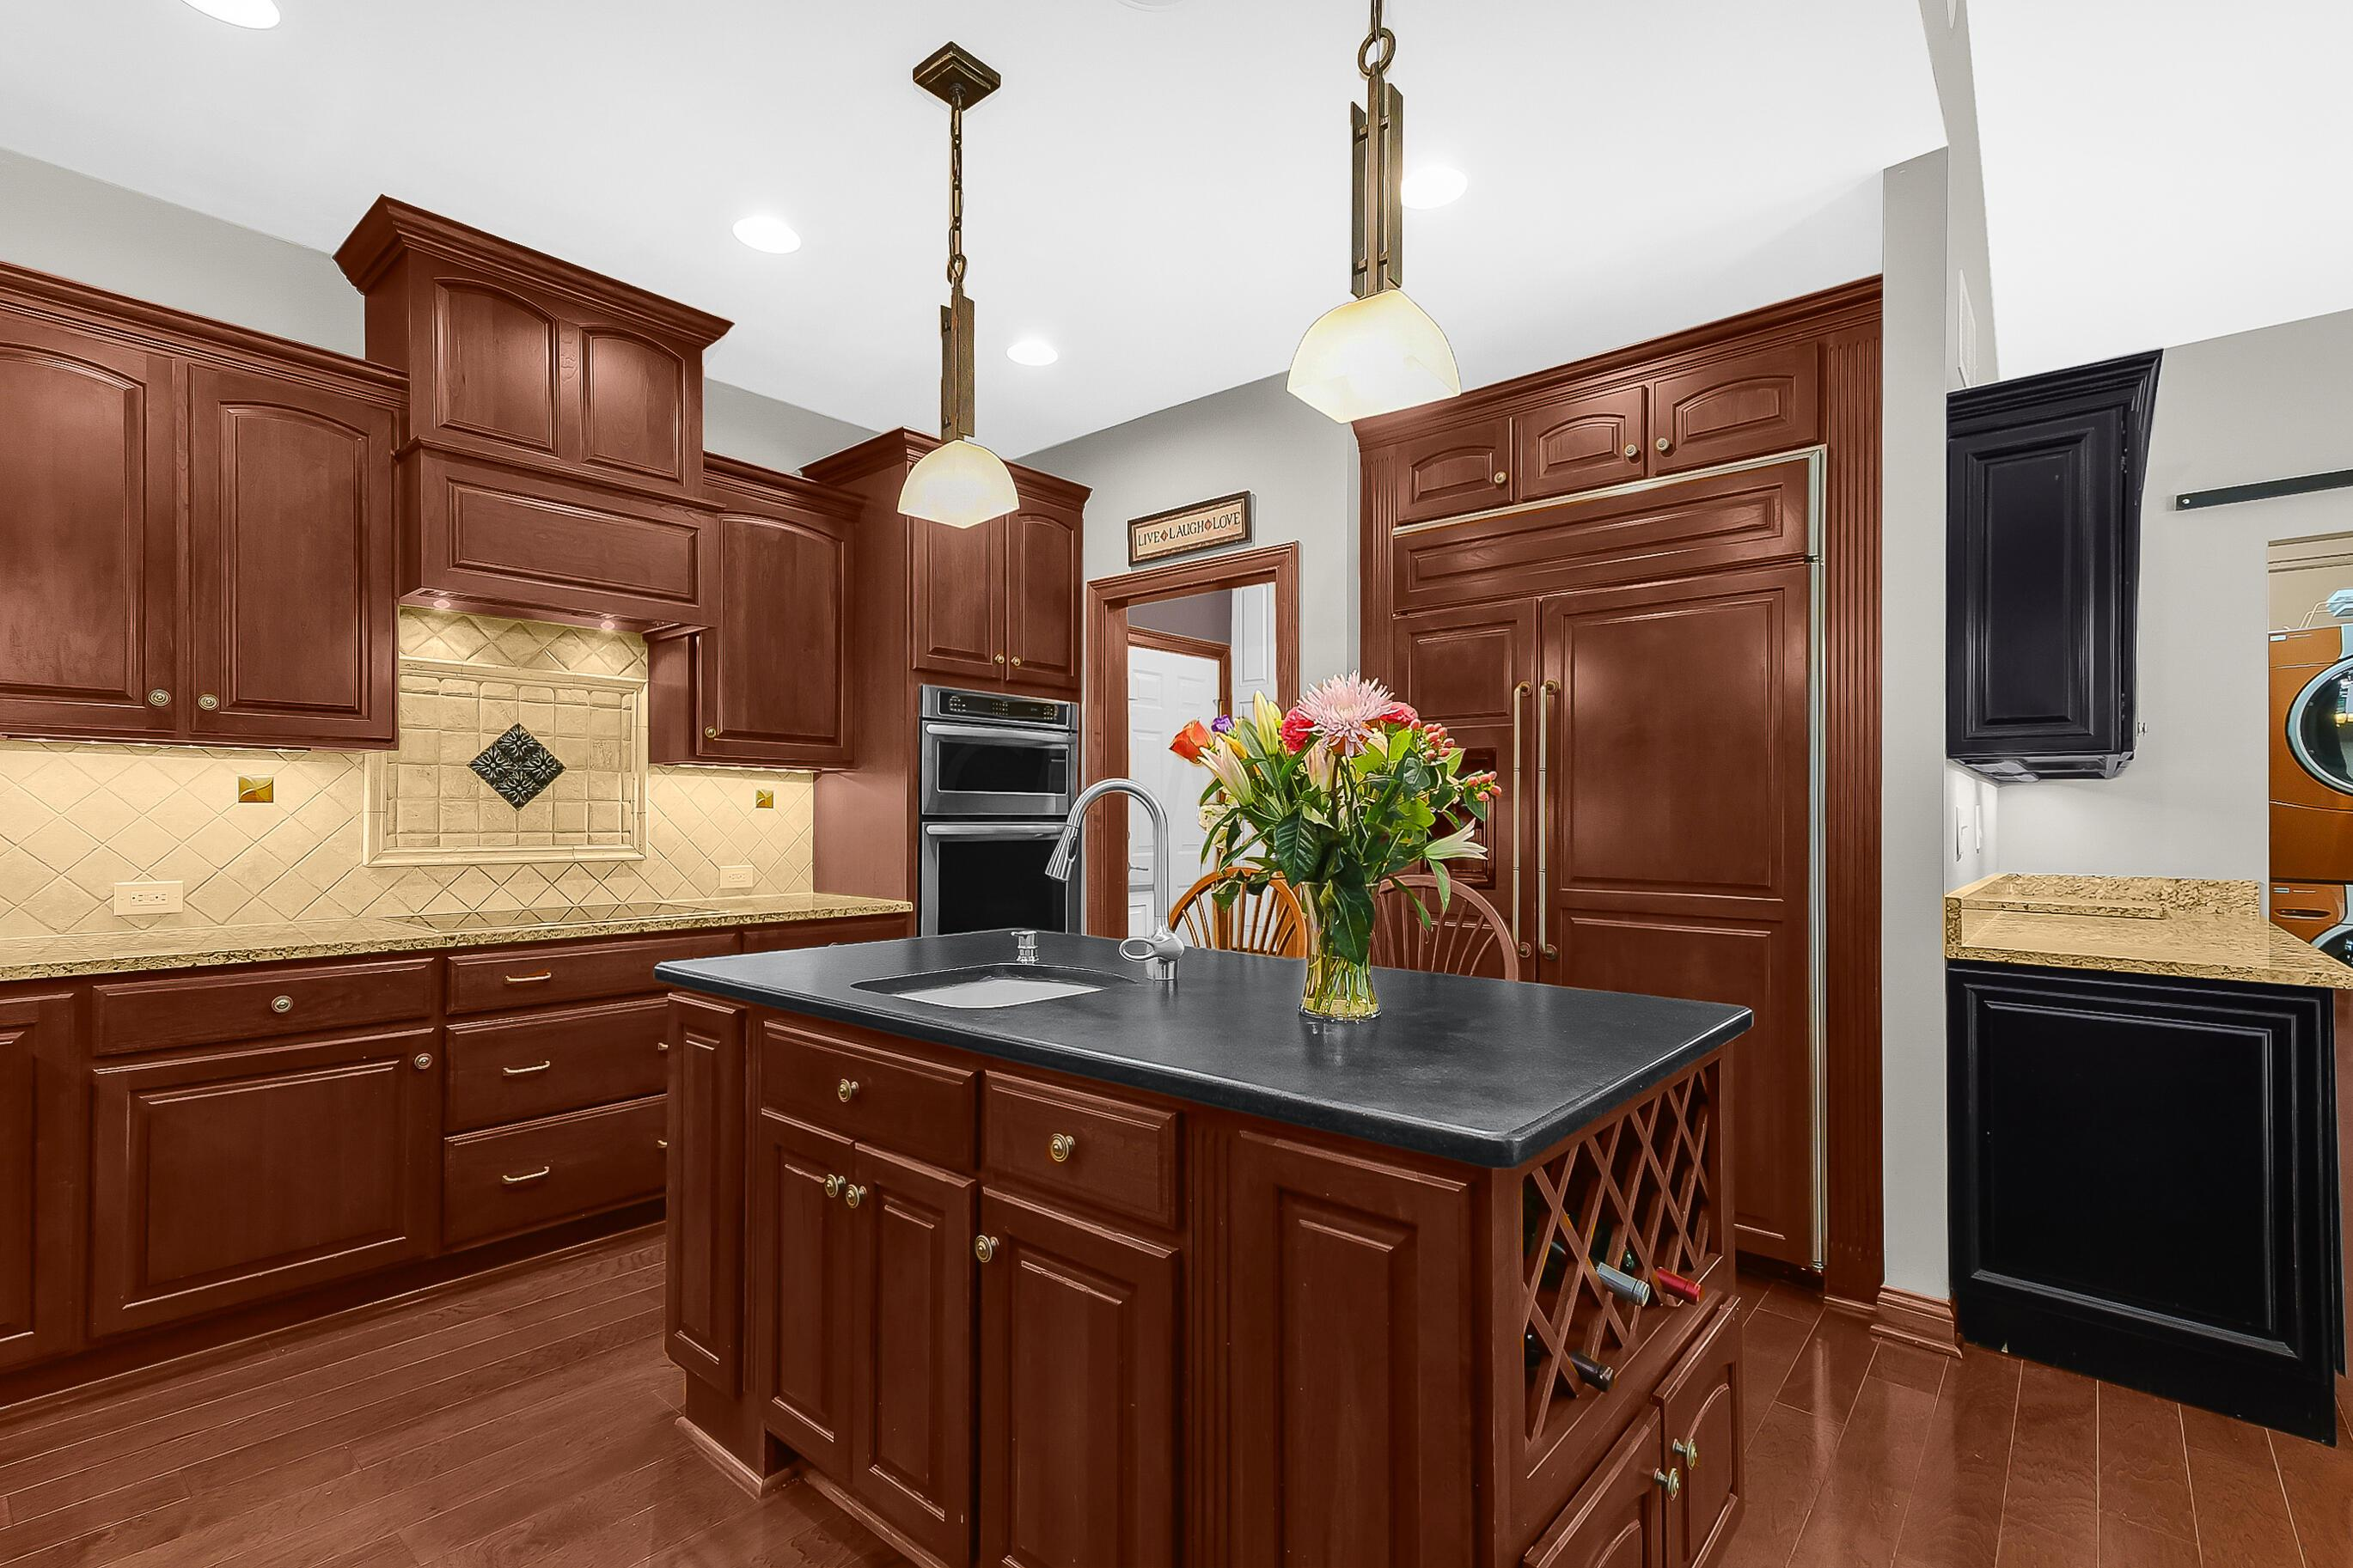 2014 Remodel offering UPSCALE Appliances